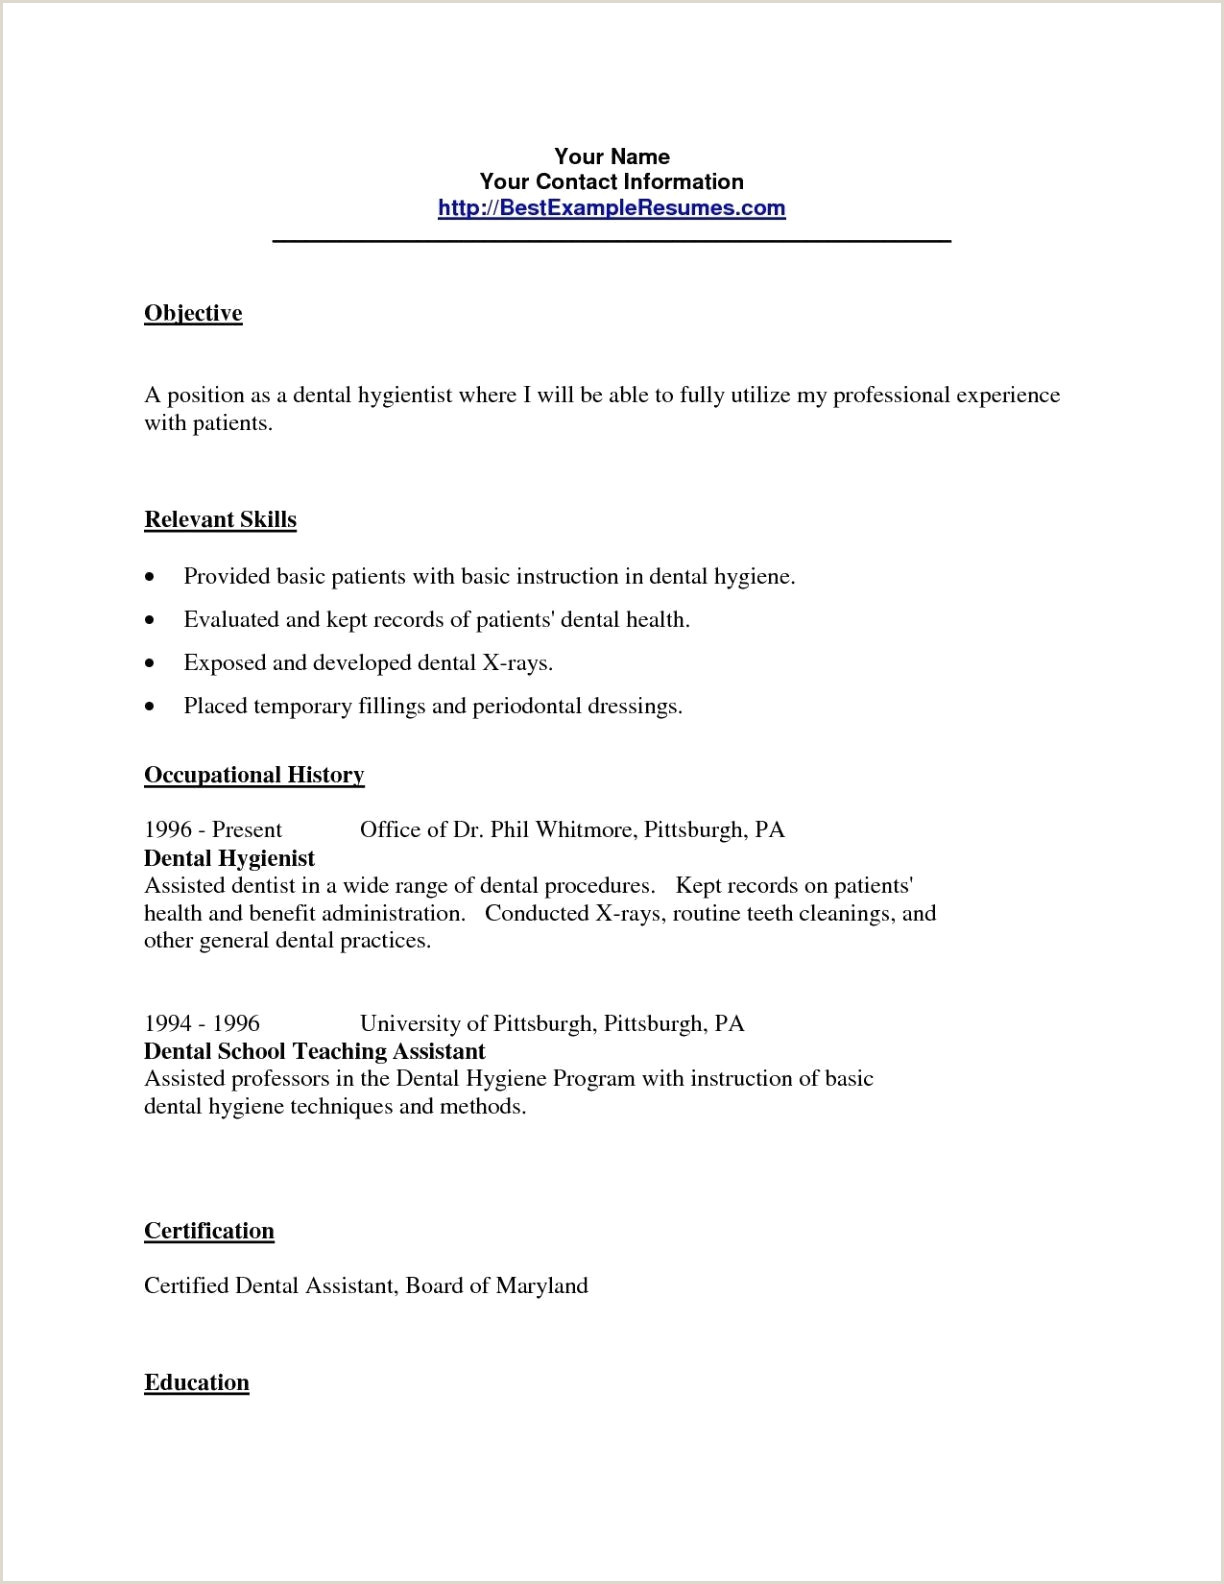 Dental Hygienist Resume Lovely Resume Sample for Pennsylvania University – 50ger